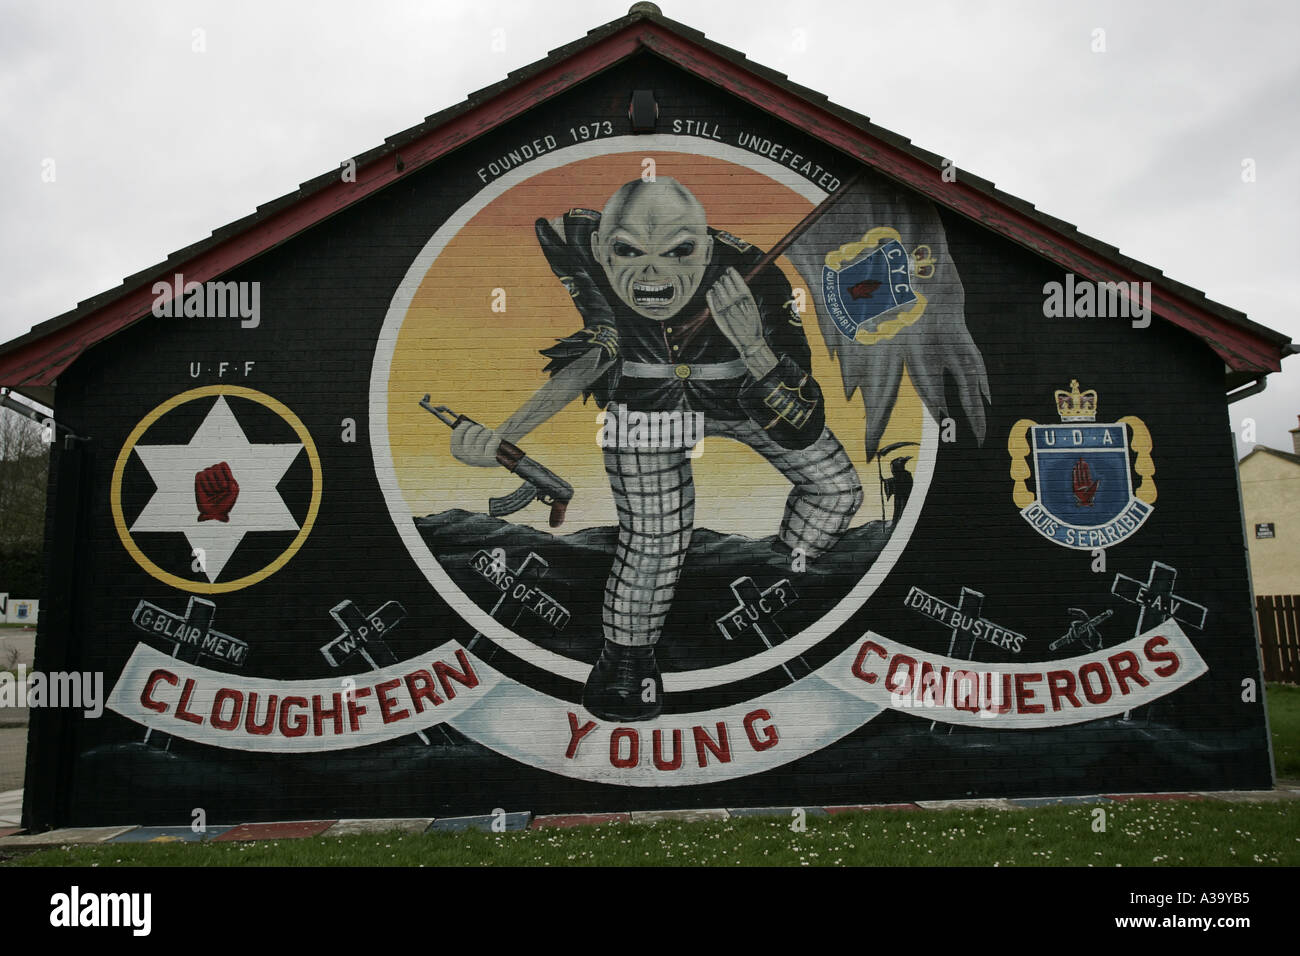 cloughfern young conquerors loyalist wall mural UFF UDA newtownabbey county antrim northern ireland - Stock Image